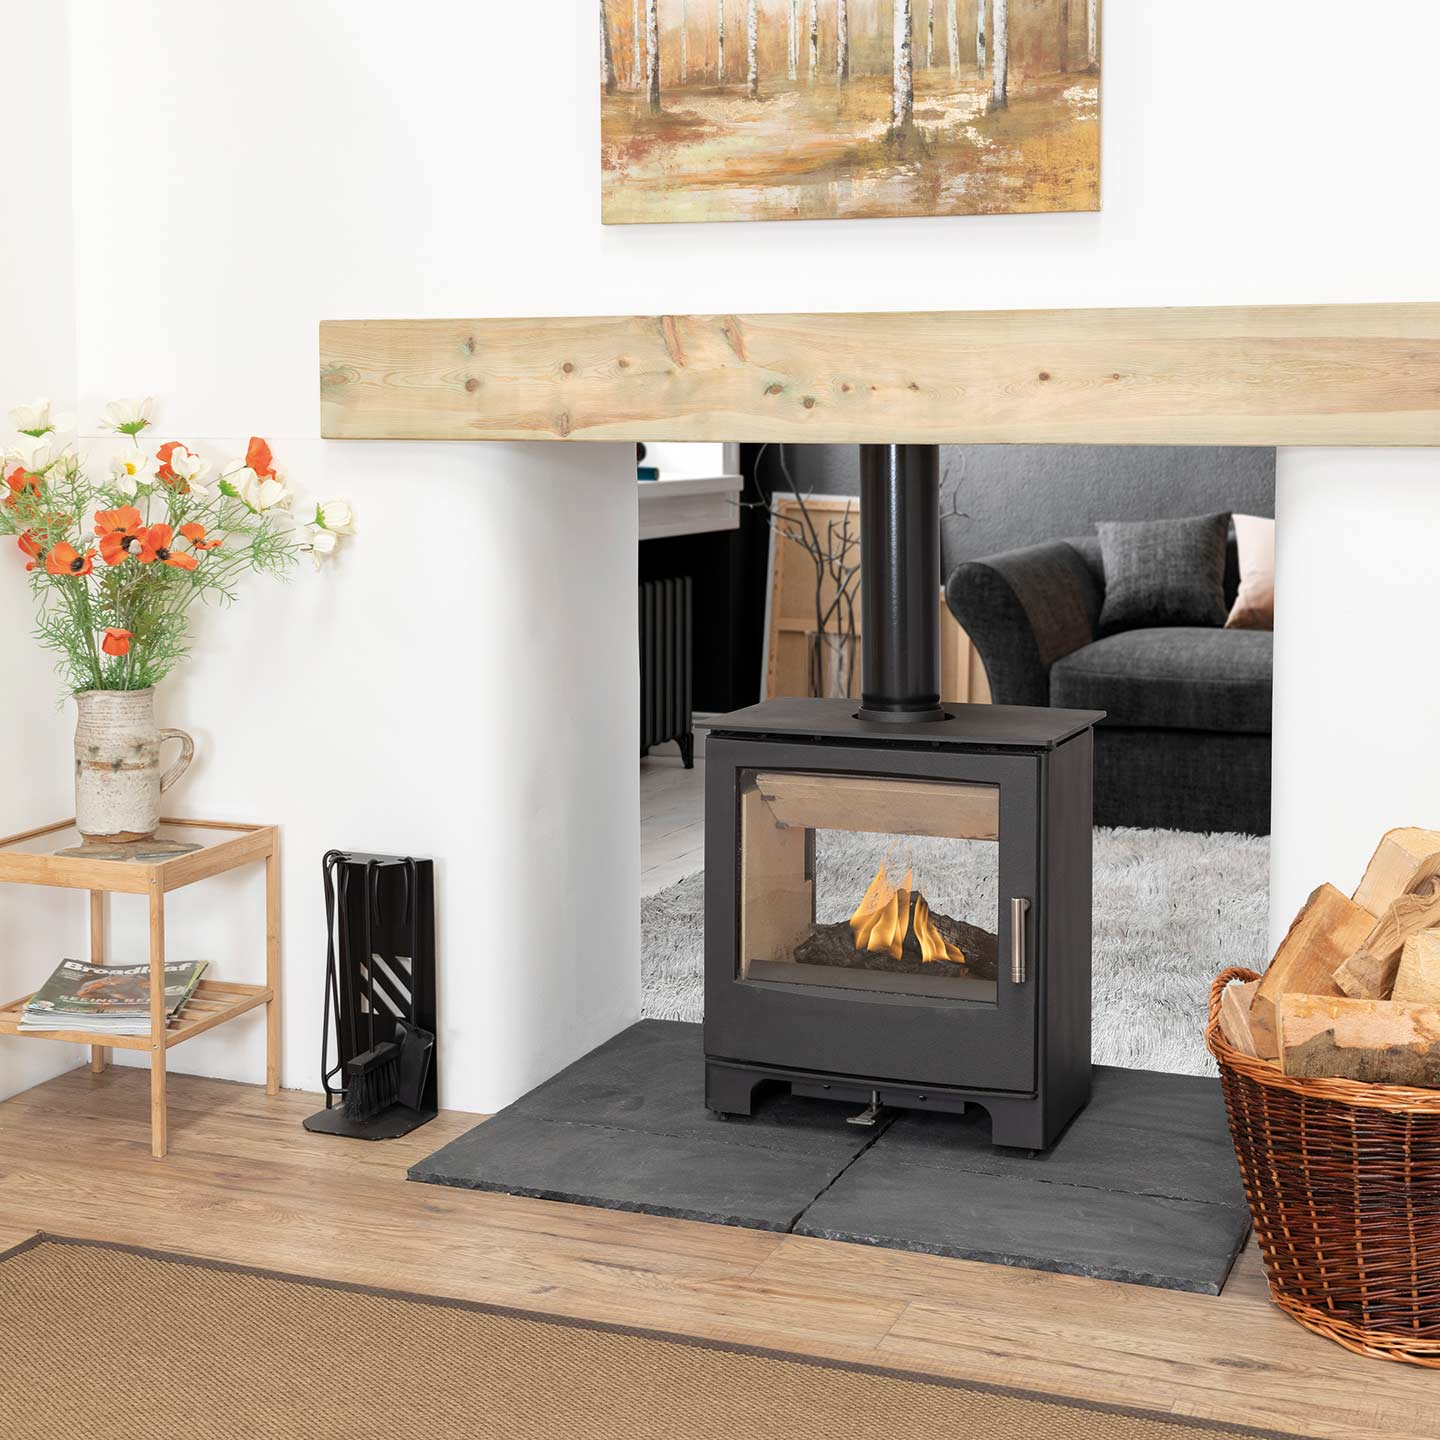 Mendip Woodland Double Sided Wood Burning Stove The Stove Site